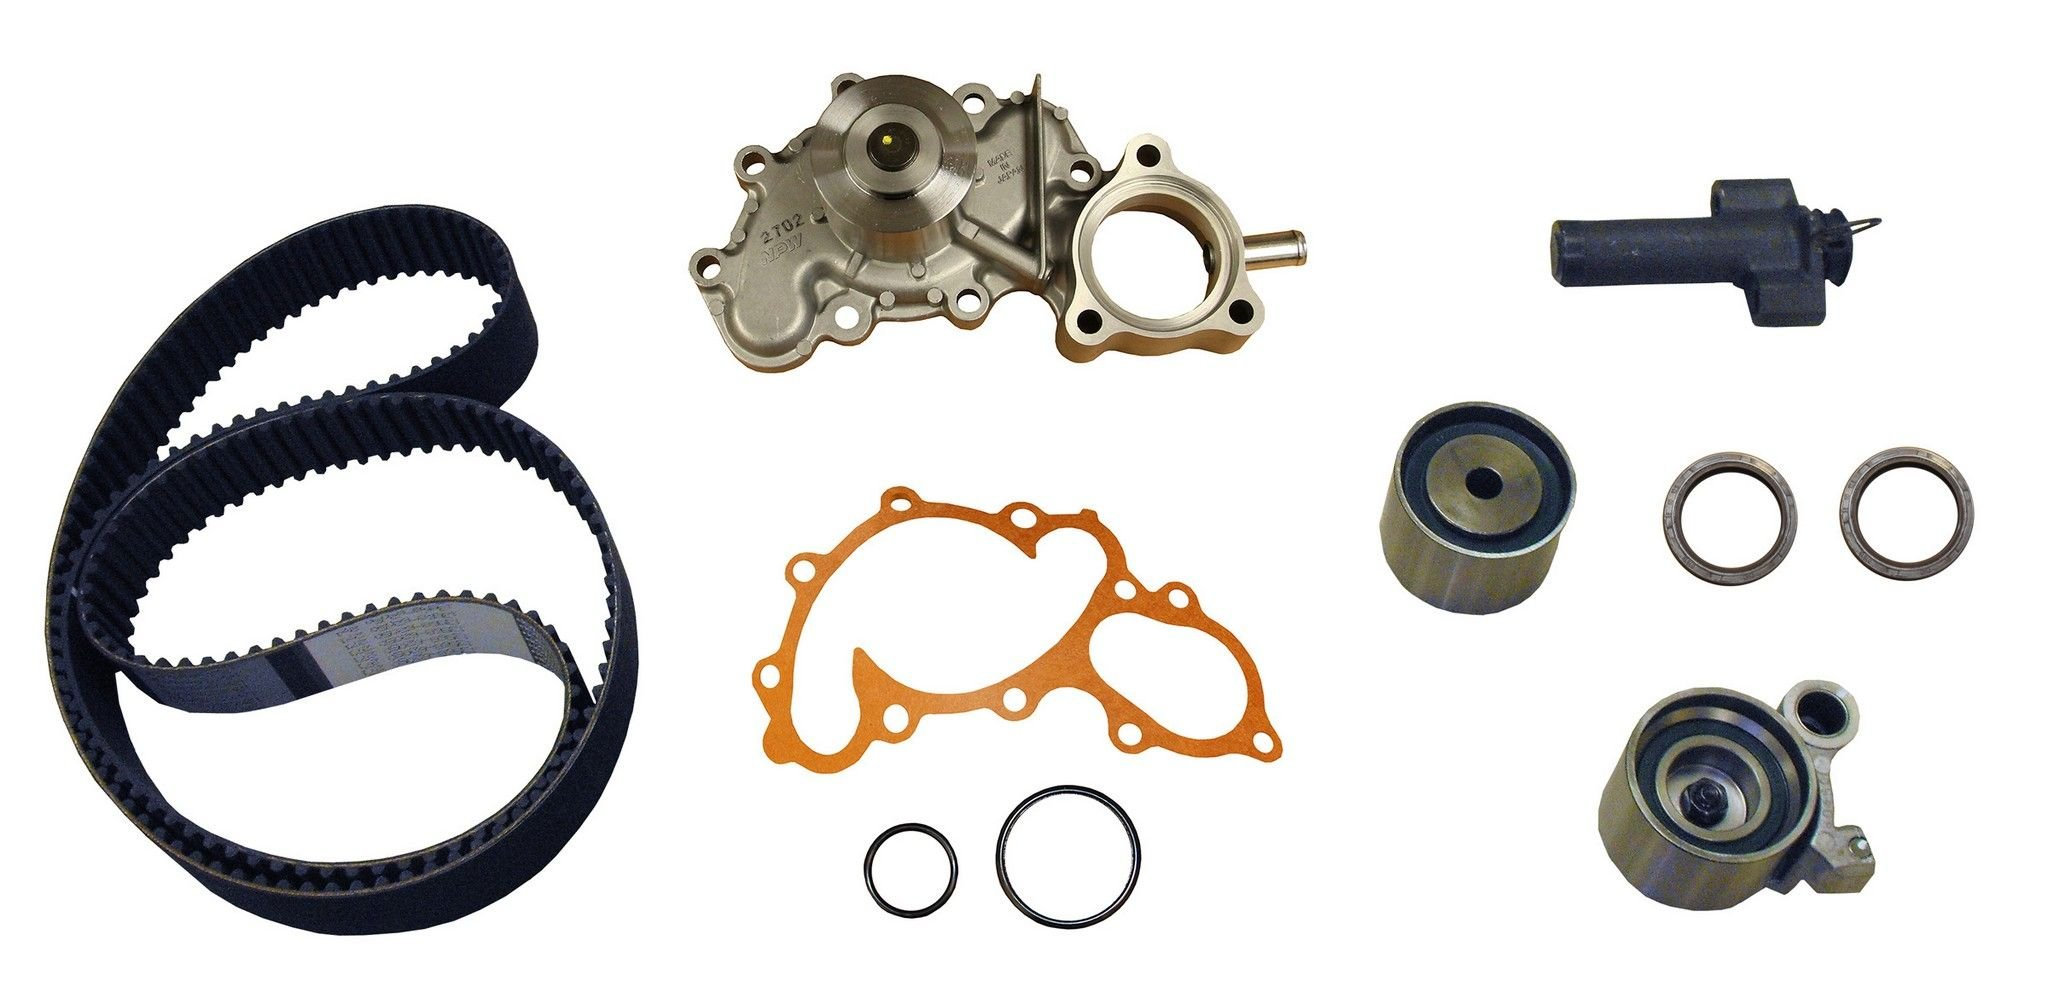 1992 Toyota 4runner Timing Belt Kit Engine With Water Pump Replacement 2002 6 Cyl 34l Crp Pp271lk1 Pro Series Plus Contitech W Wp Bypass Tube